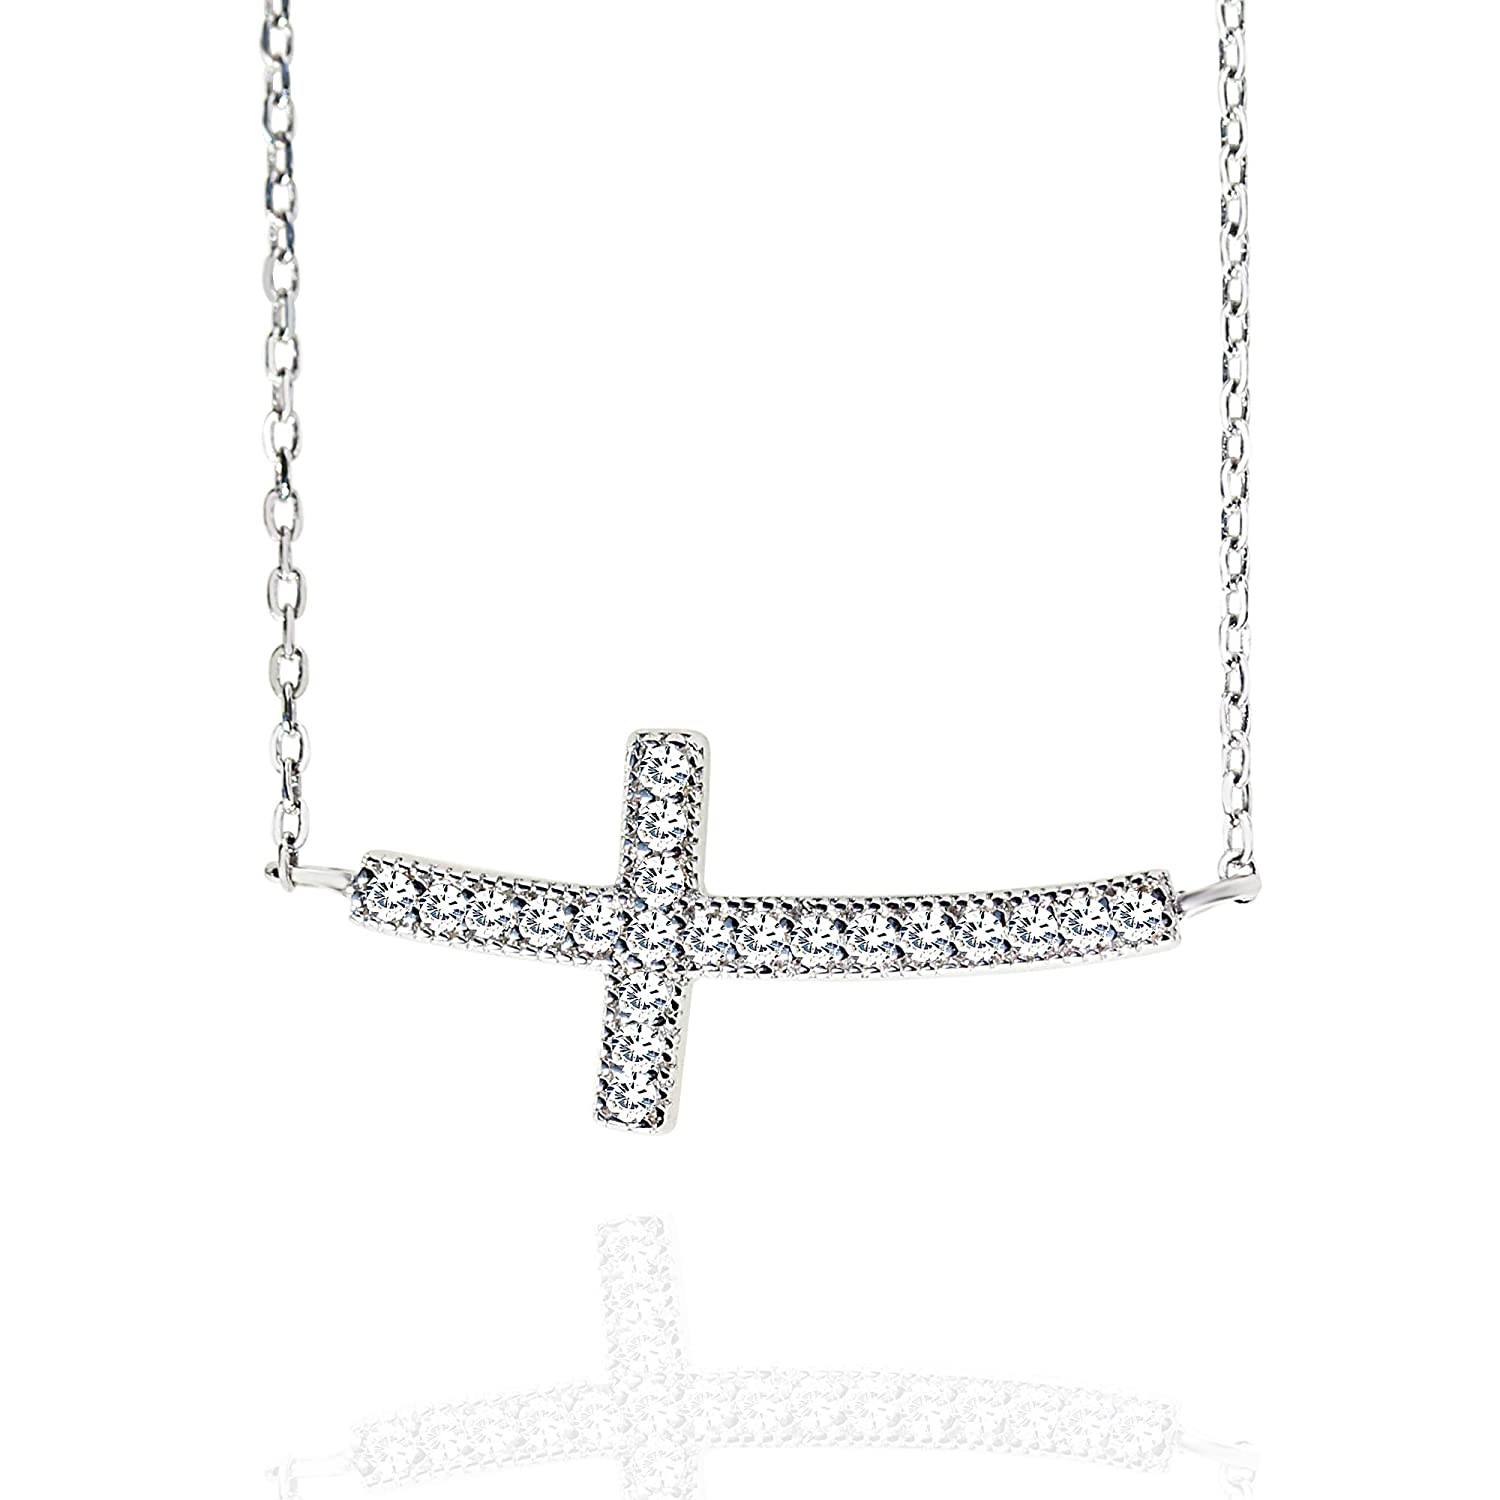 "Spoil Cupid Rhodium Plated Sterling Silver Cubic Zirconia Curved Sideways Cross Chain Necklace, 18"" 18"" Urban Lemon Inc FN00026-W"